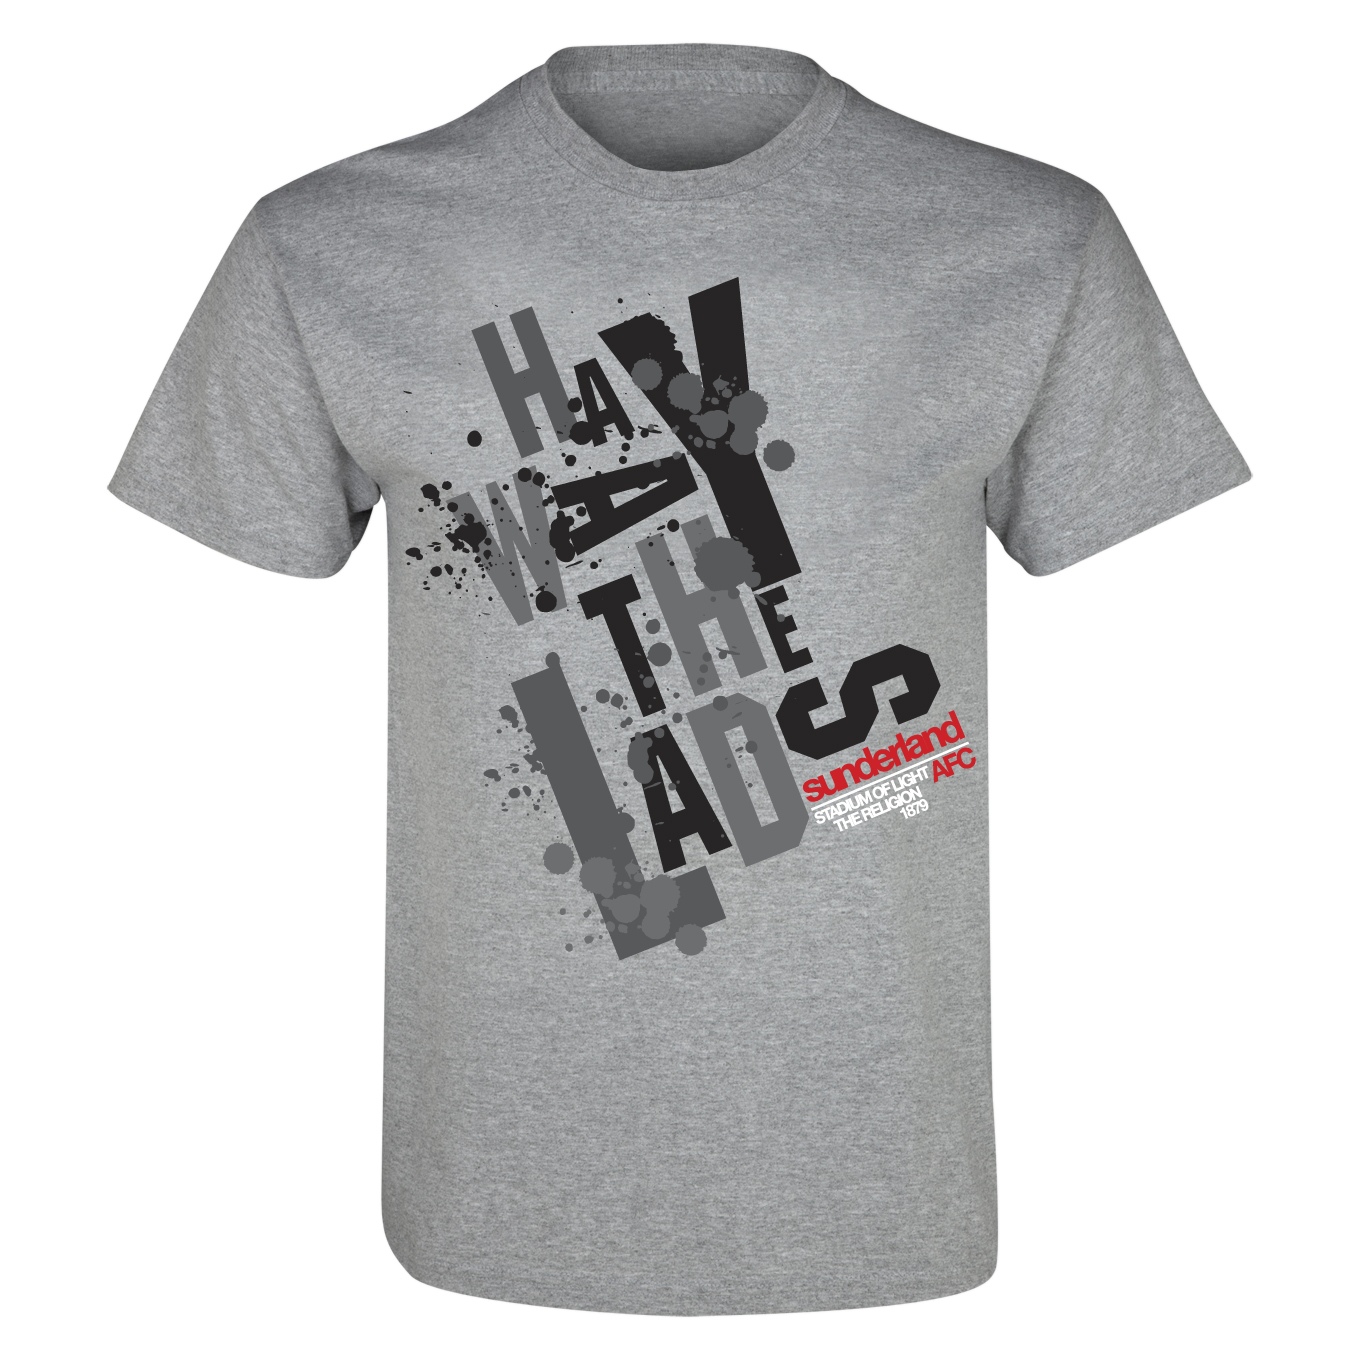 Sunderland 2for?15 Lads T-Shirt - Grey Marl - Junior